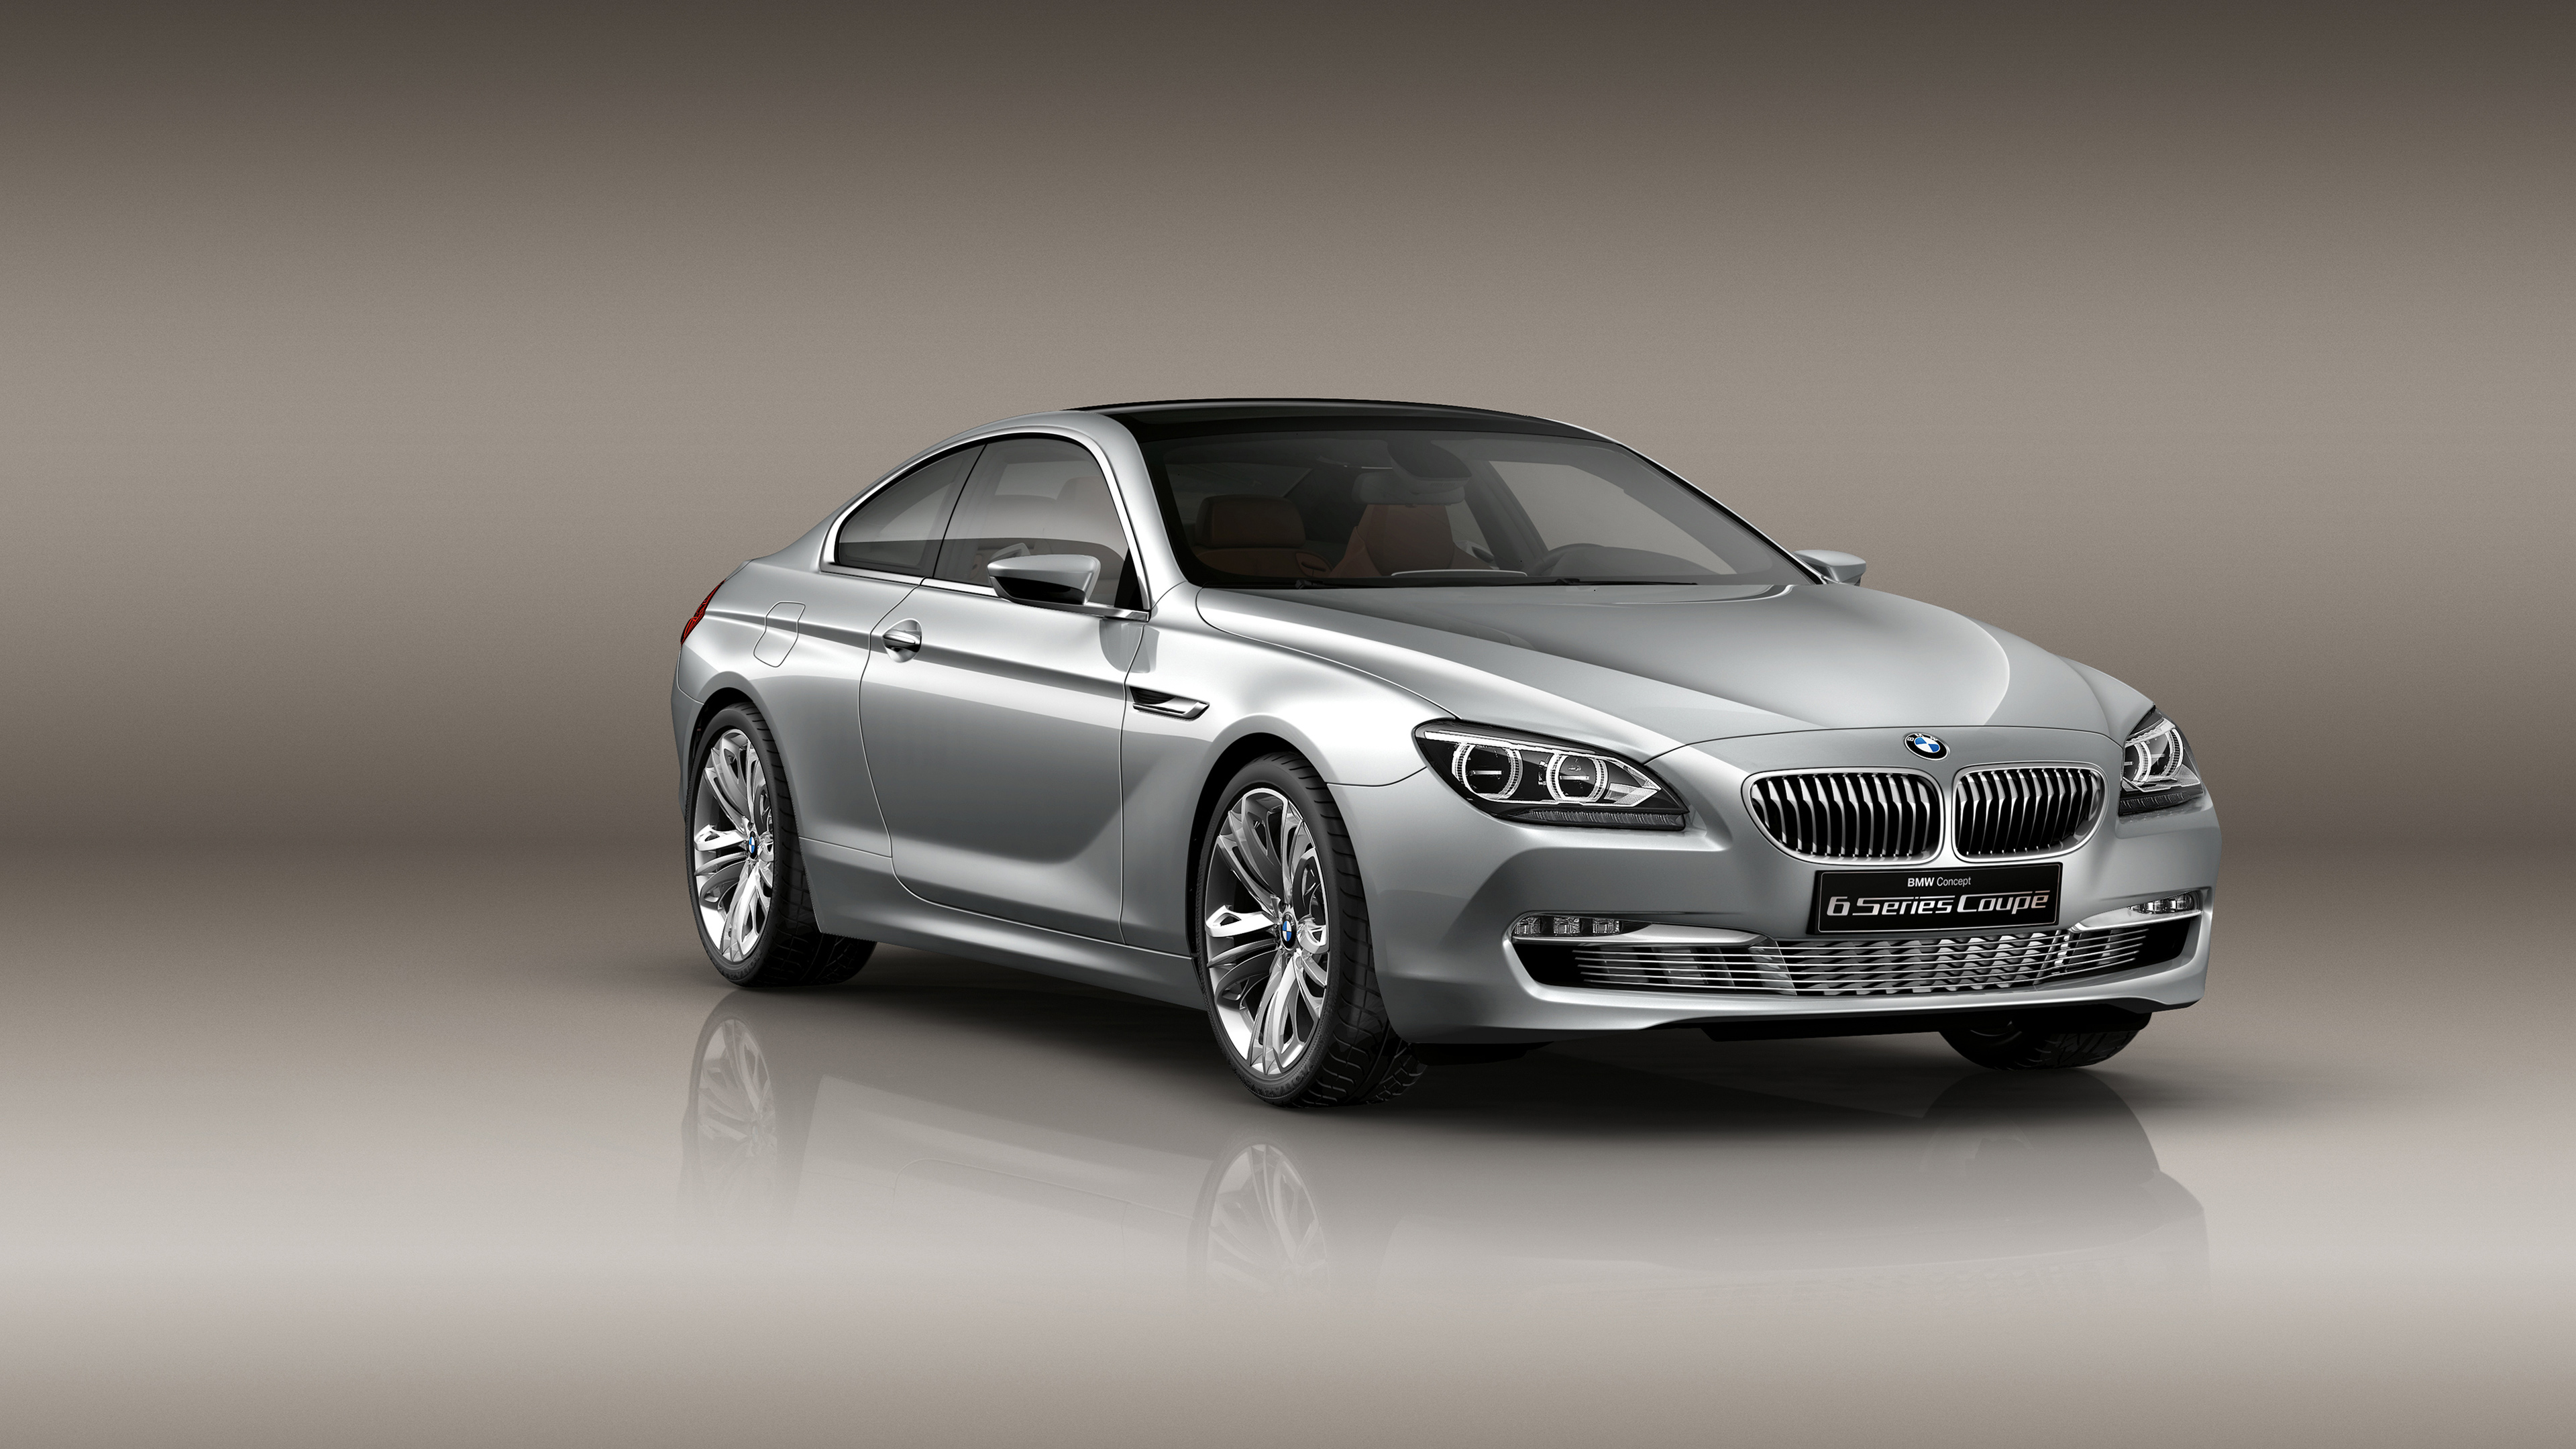 2017 BMW 6 Series Coupe photo - 1